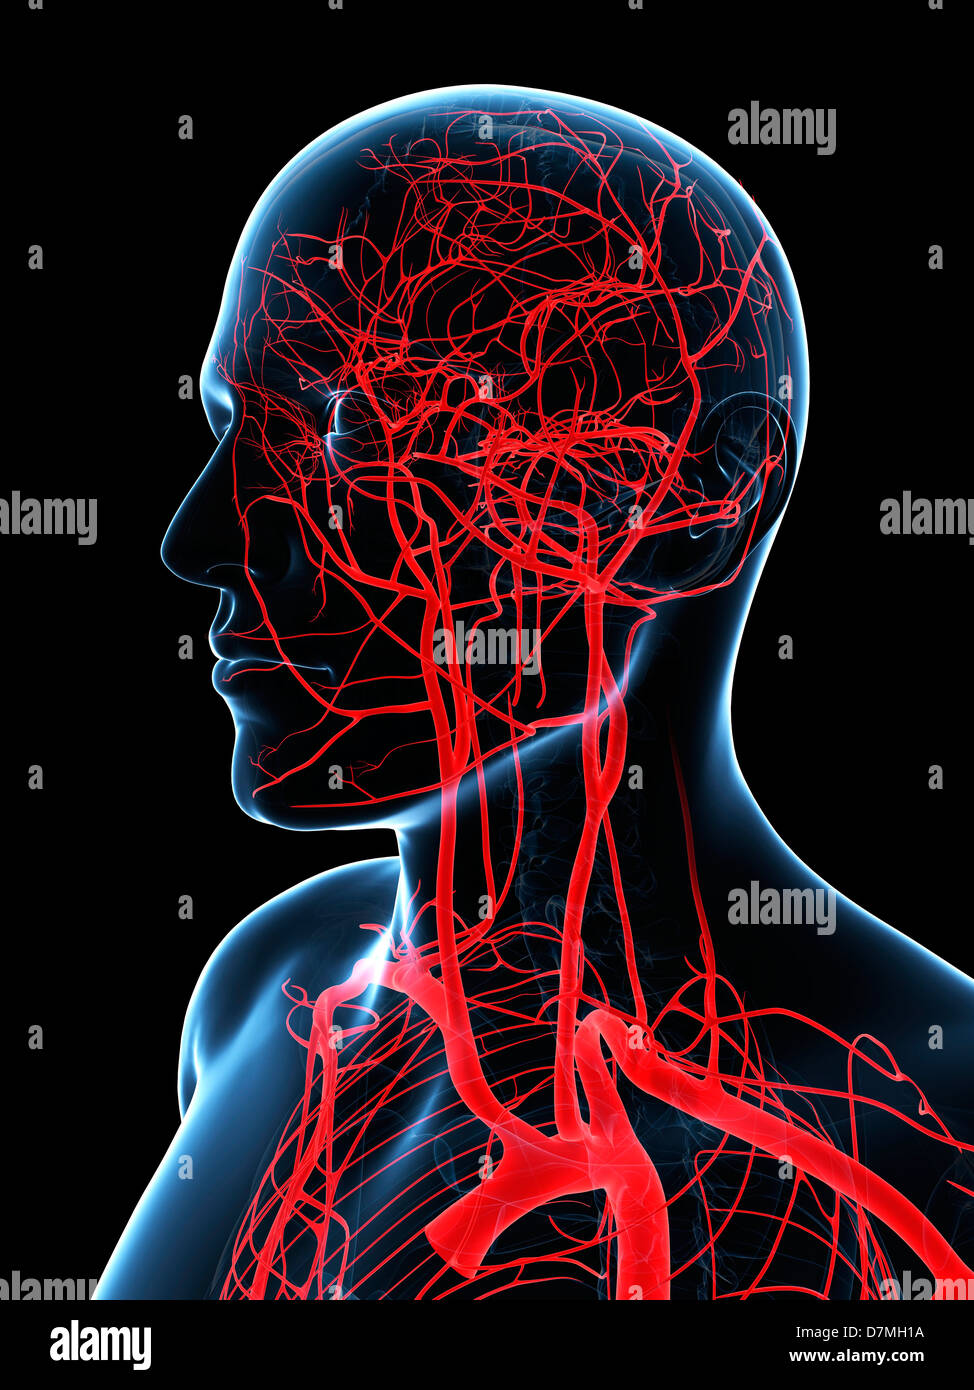 Head and neck arteries, artwork Stock Photo: 56386102 - Alamy